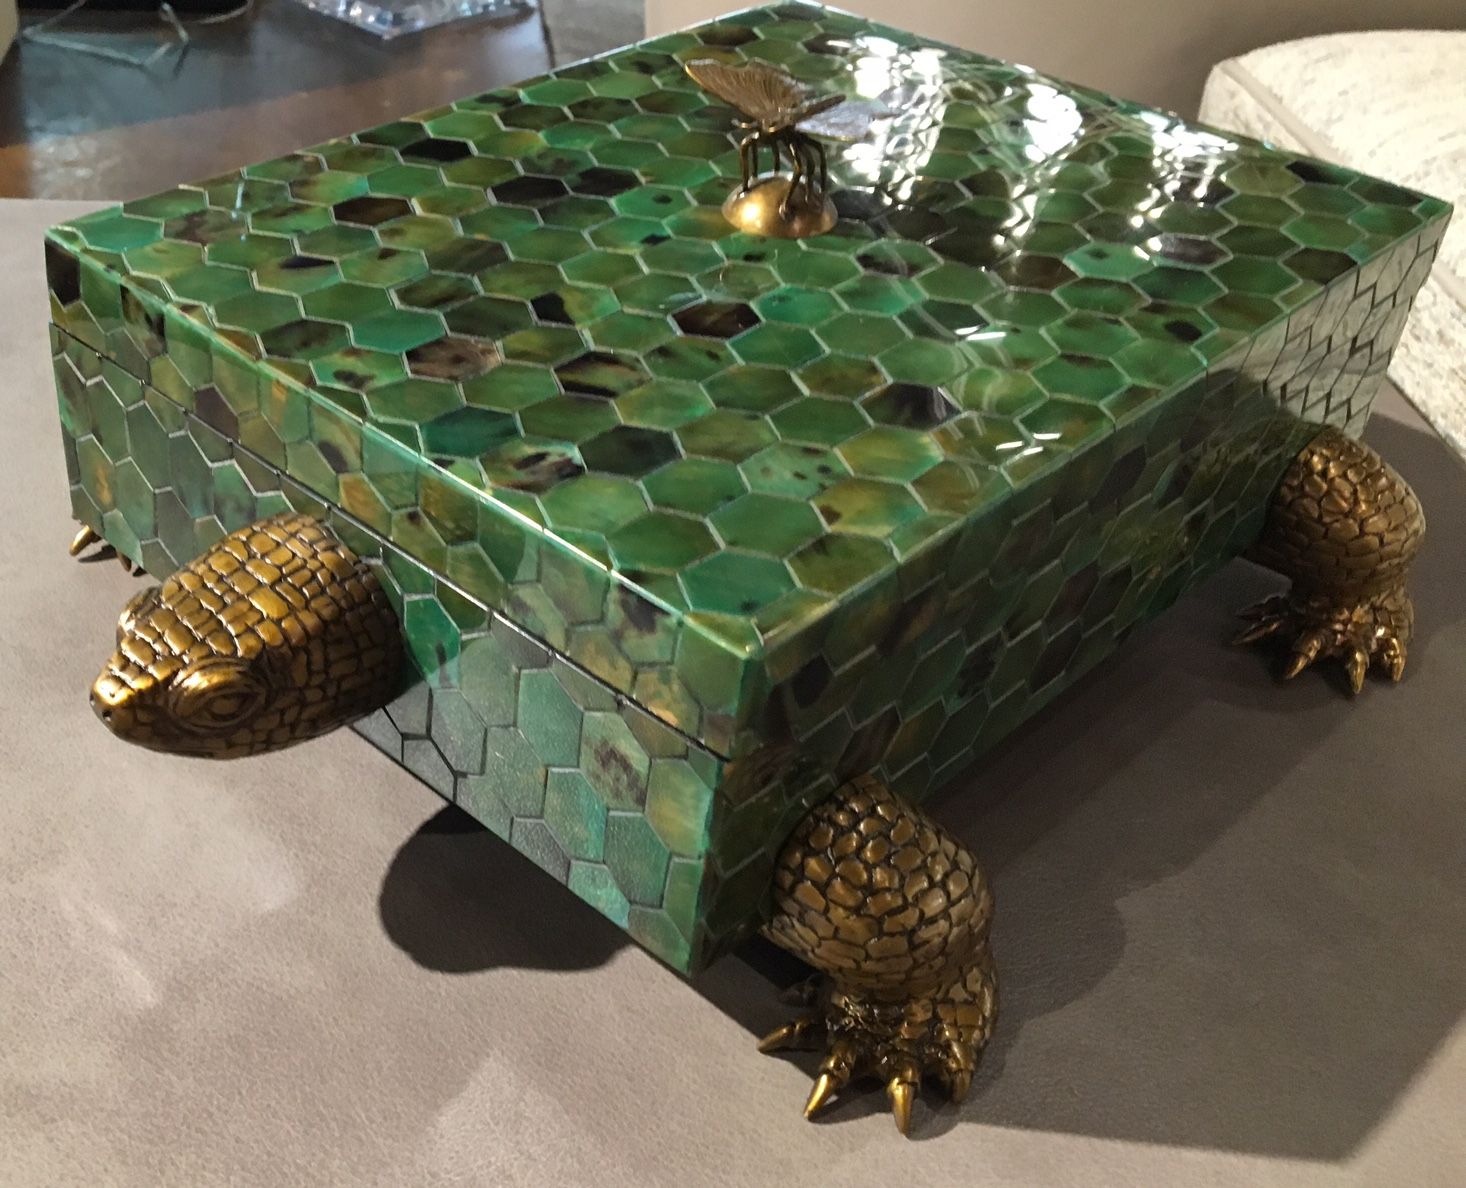 turtlebox